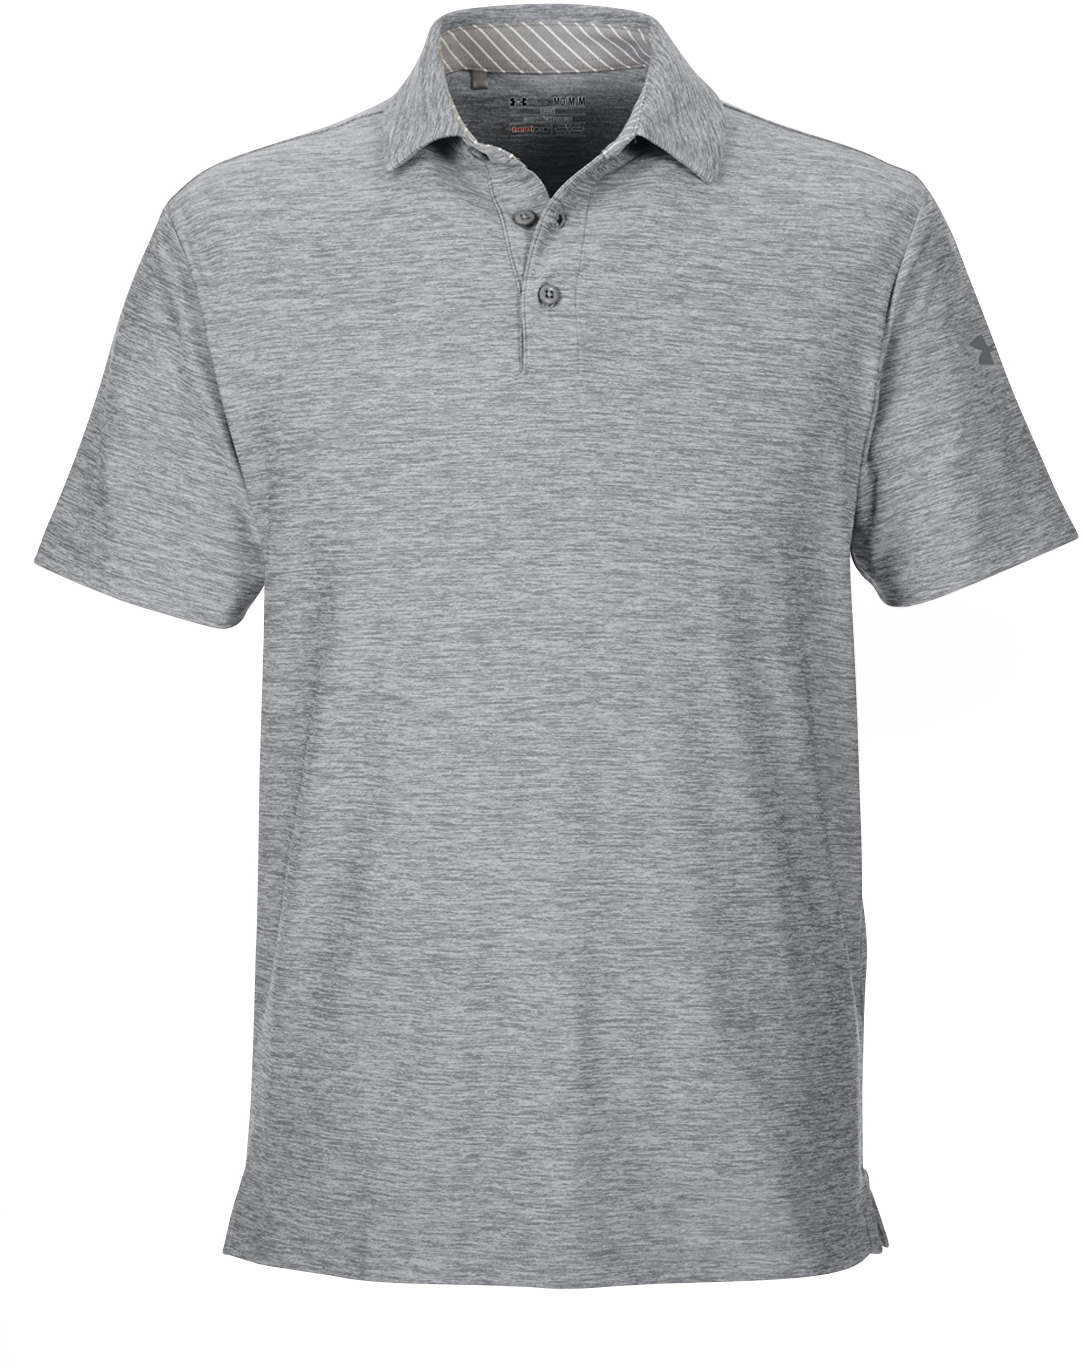 Under armour men 39 s corporate playoff polo for Under armor business shirts